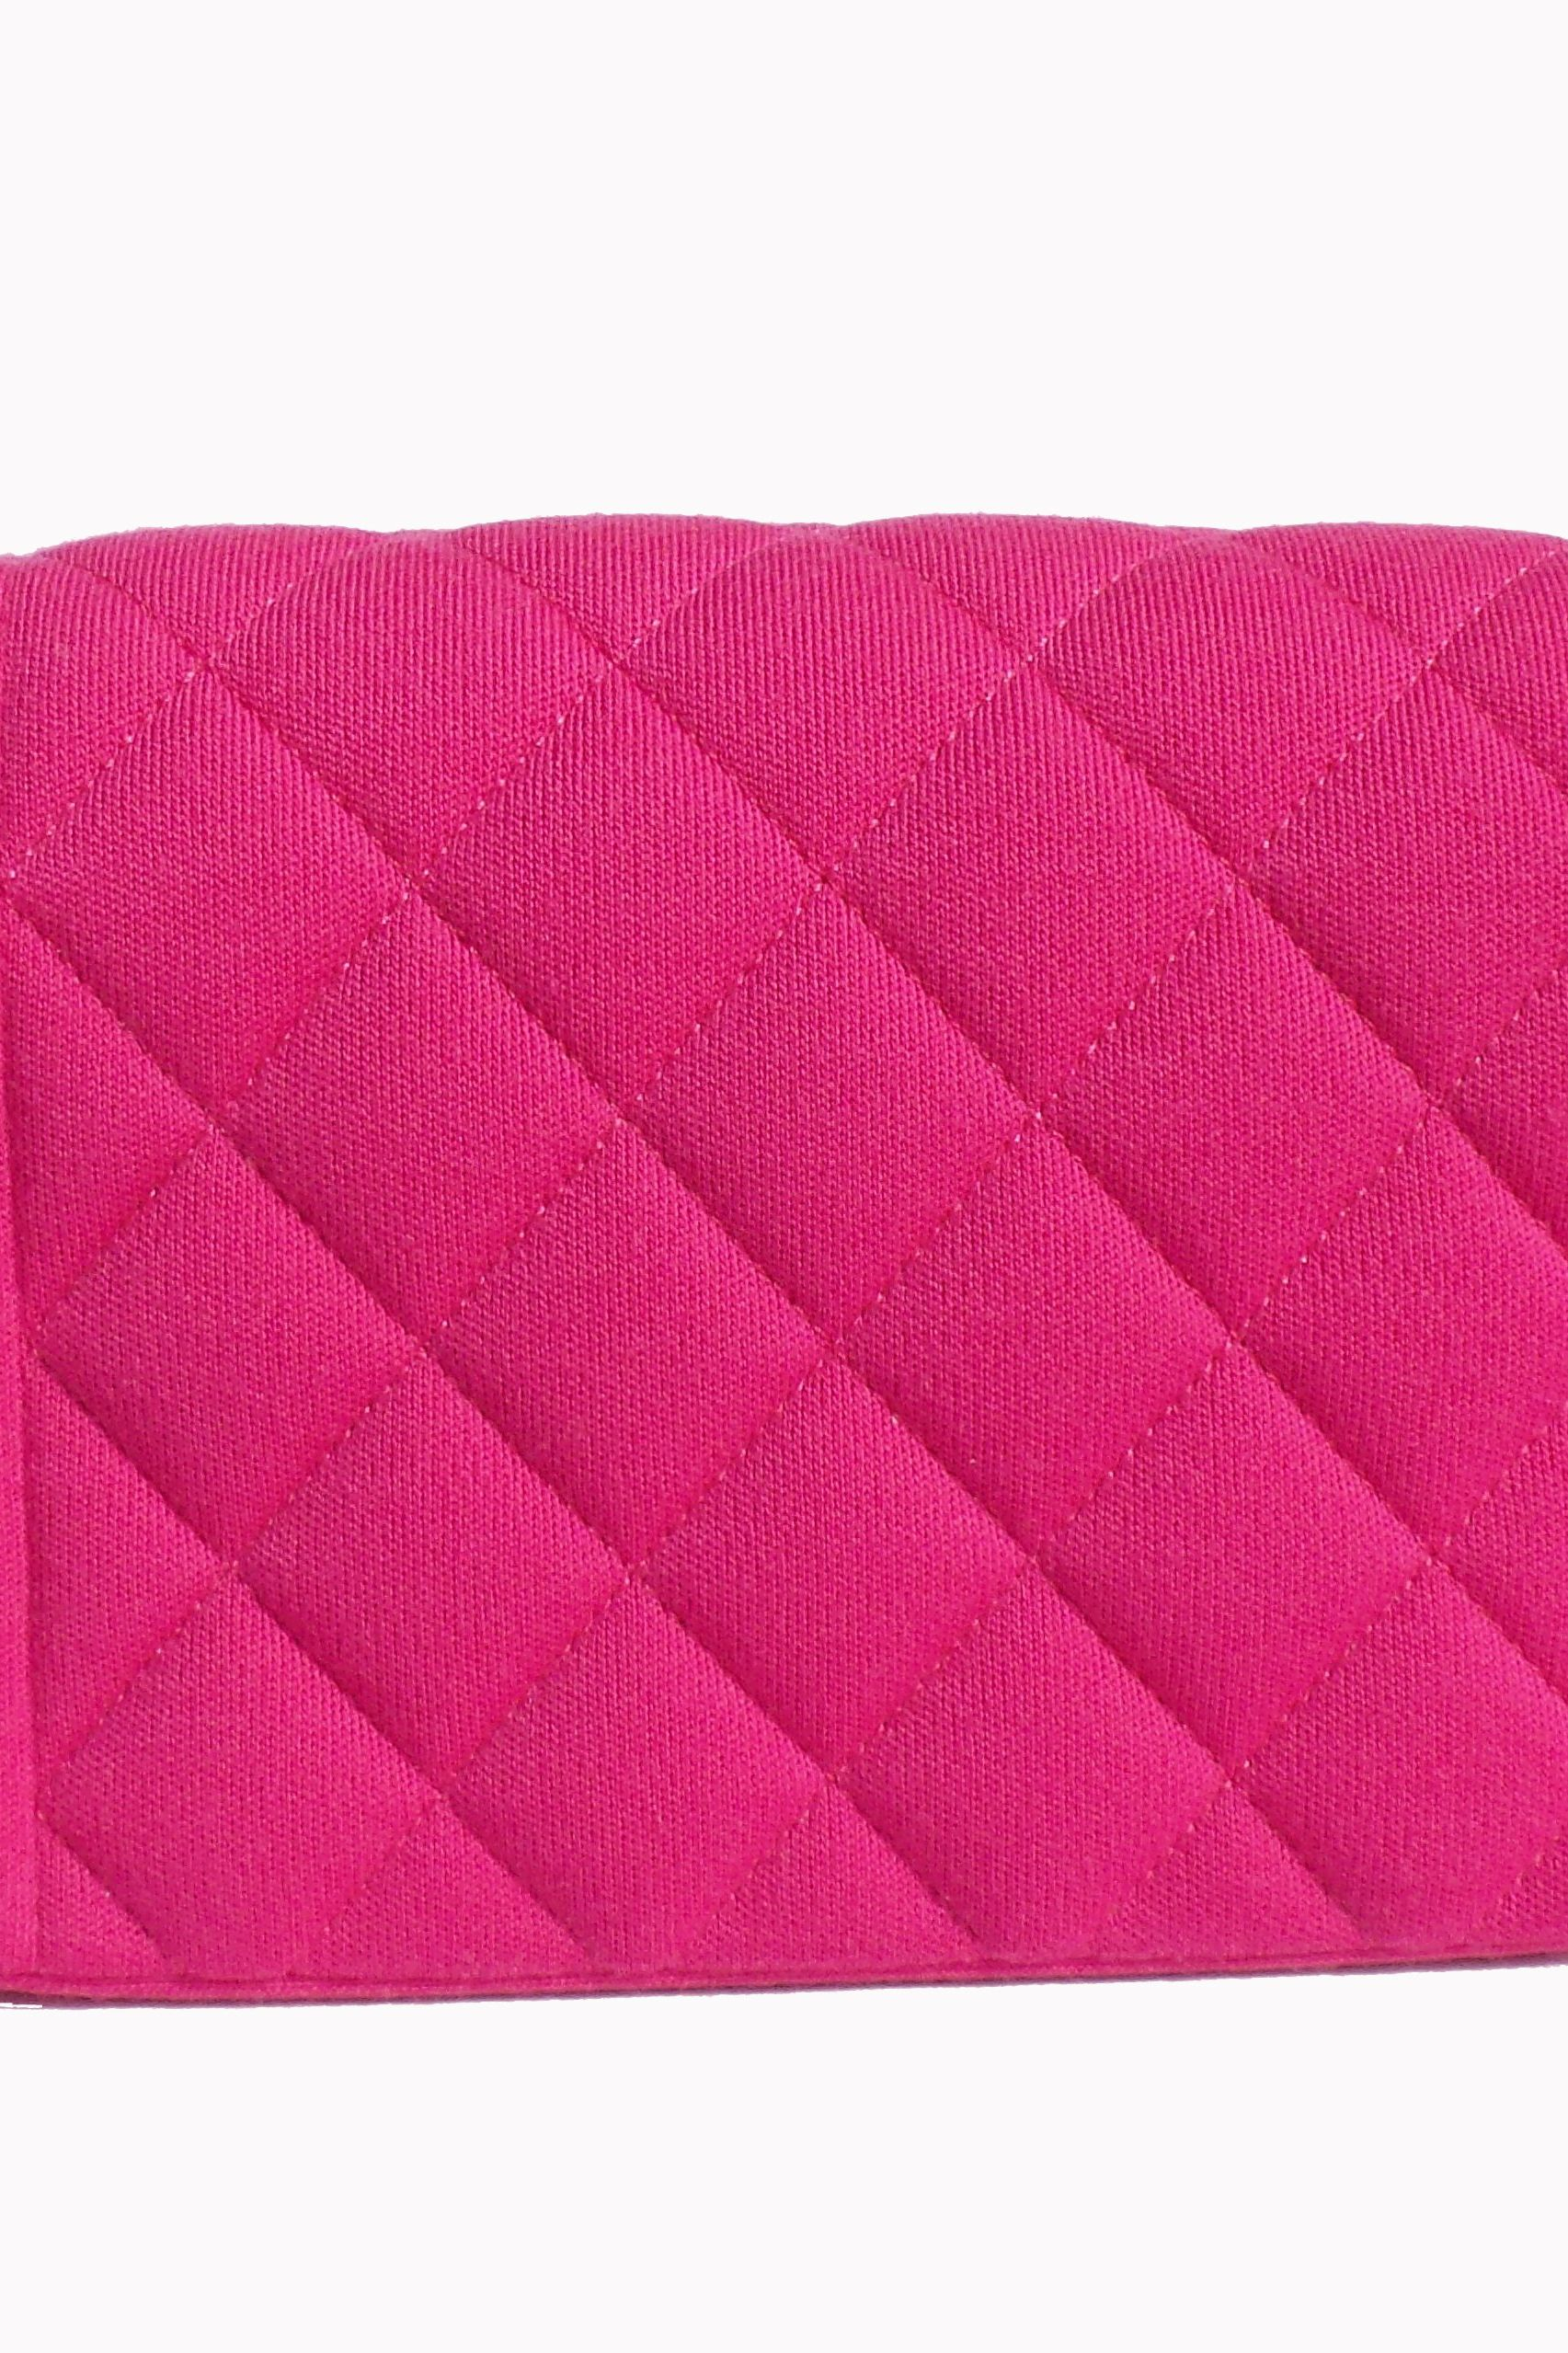 Chanel Hot Pink Quilted Jersey Mini Flap Bag 3 Preview Images